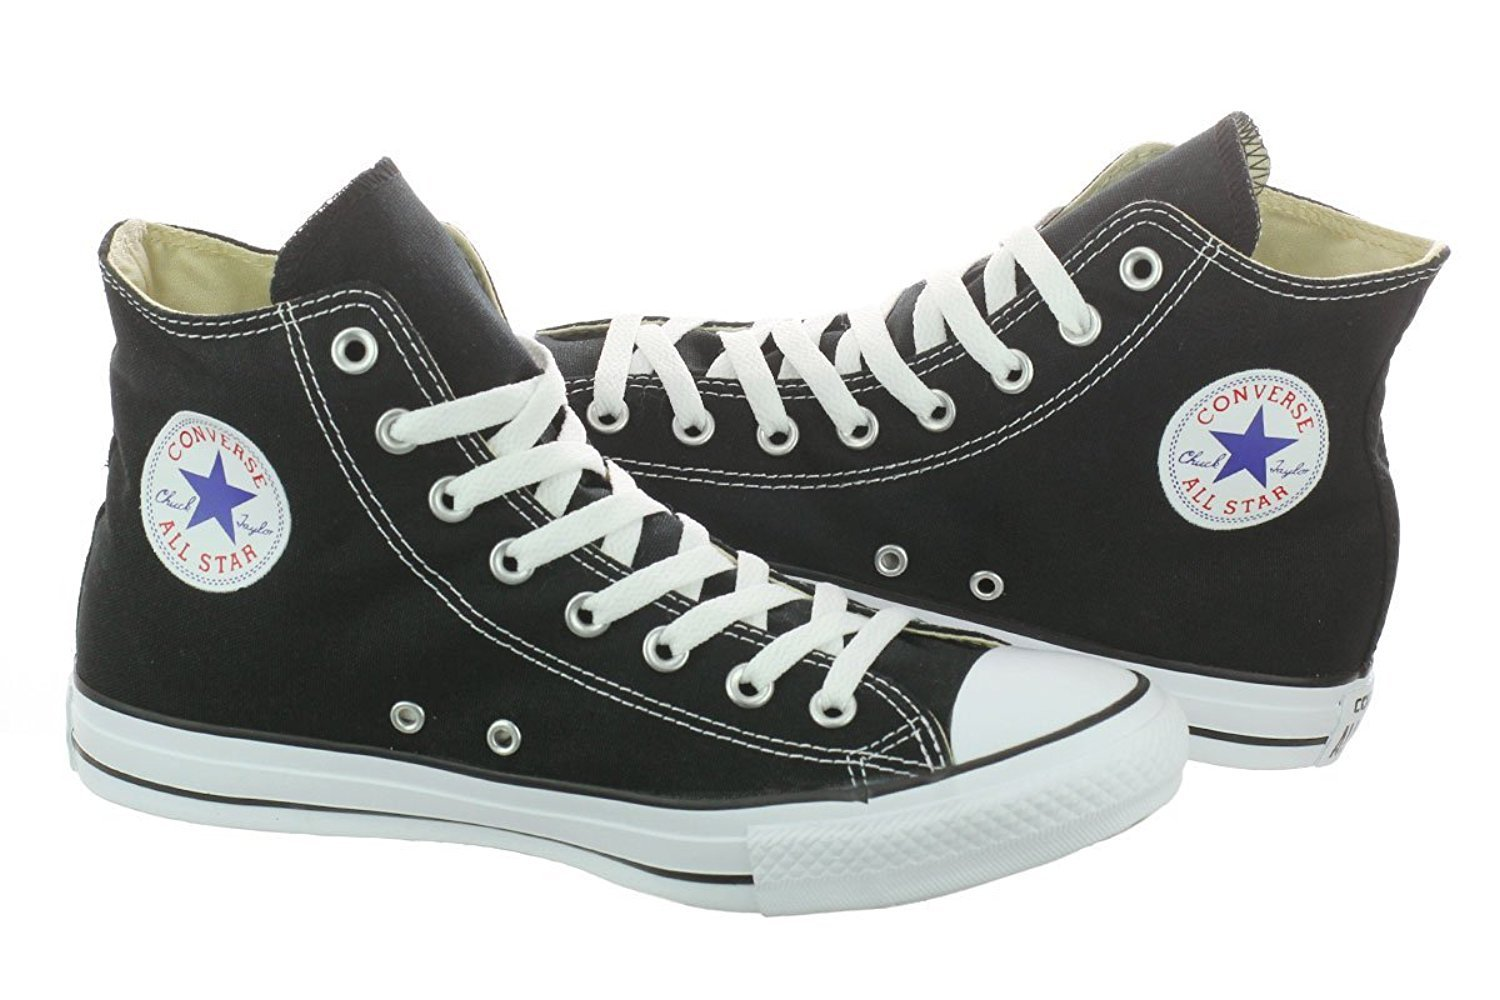 Converse  Chuck Taylor All Star High Top Shoe, Black, 6.5 M US